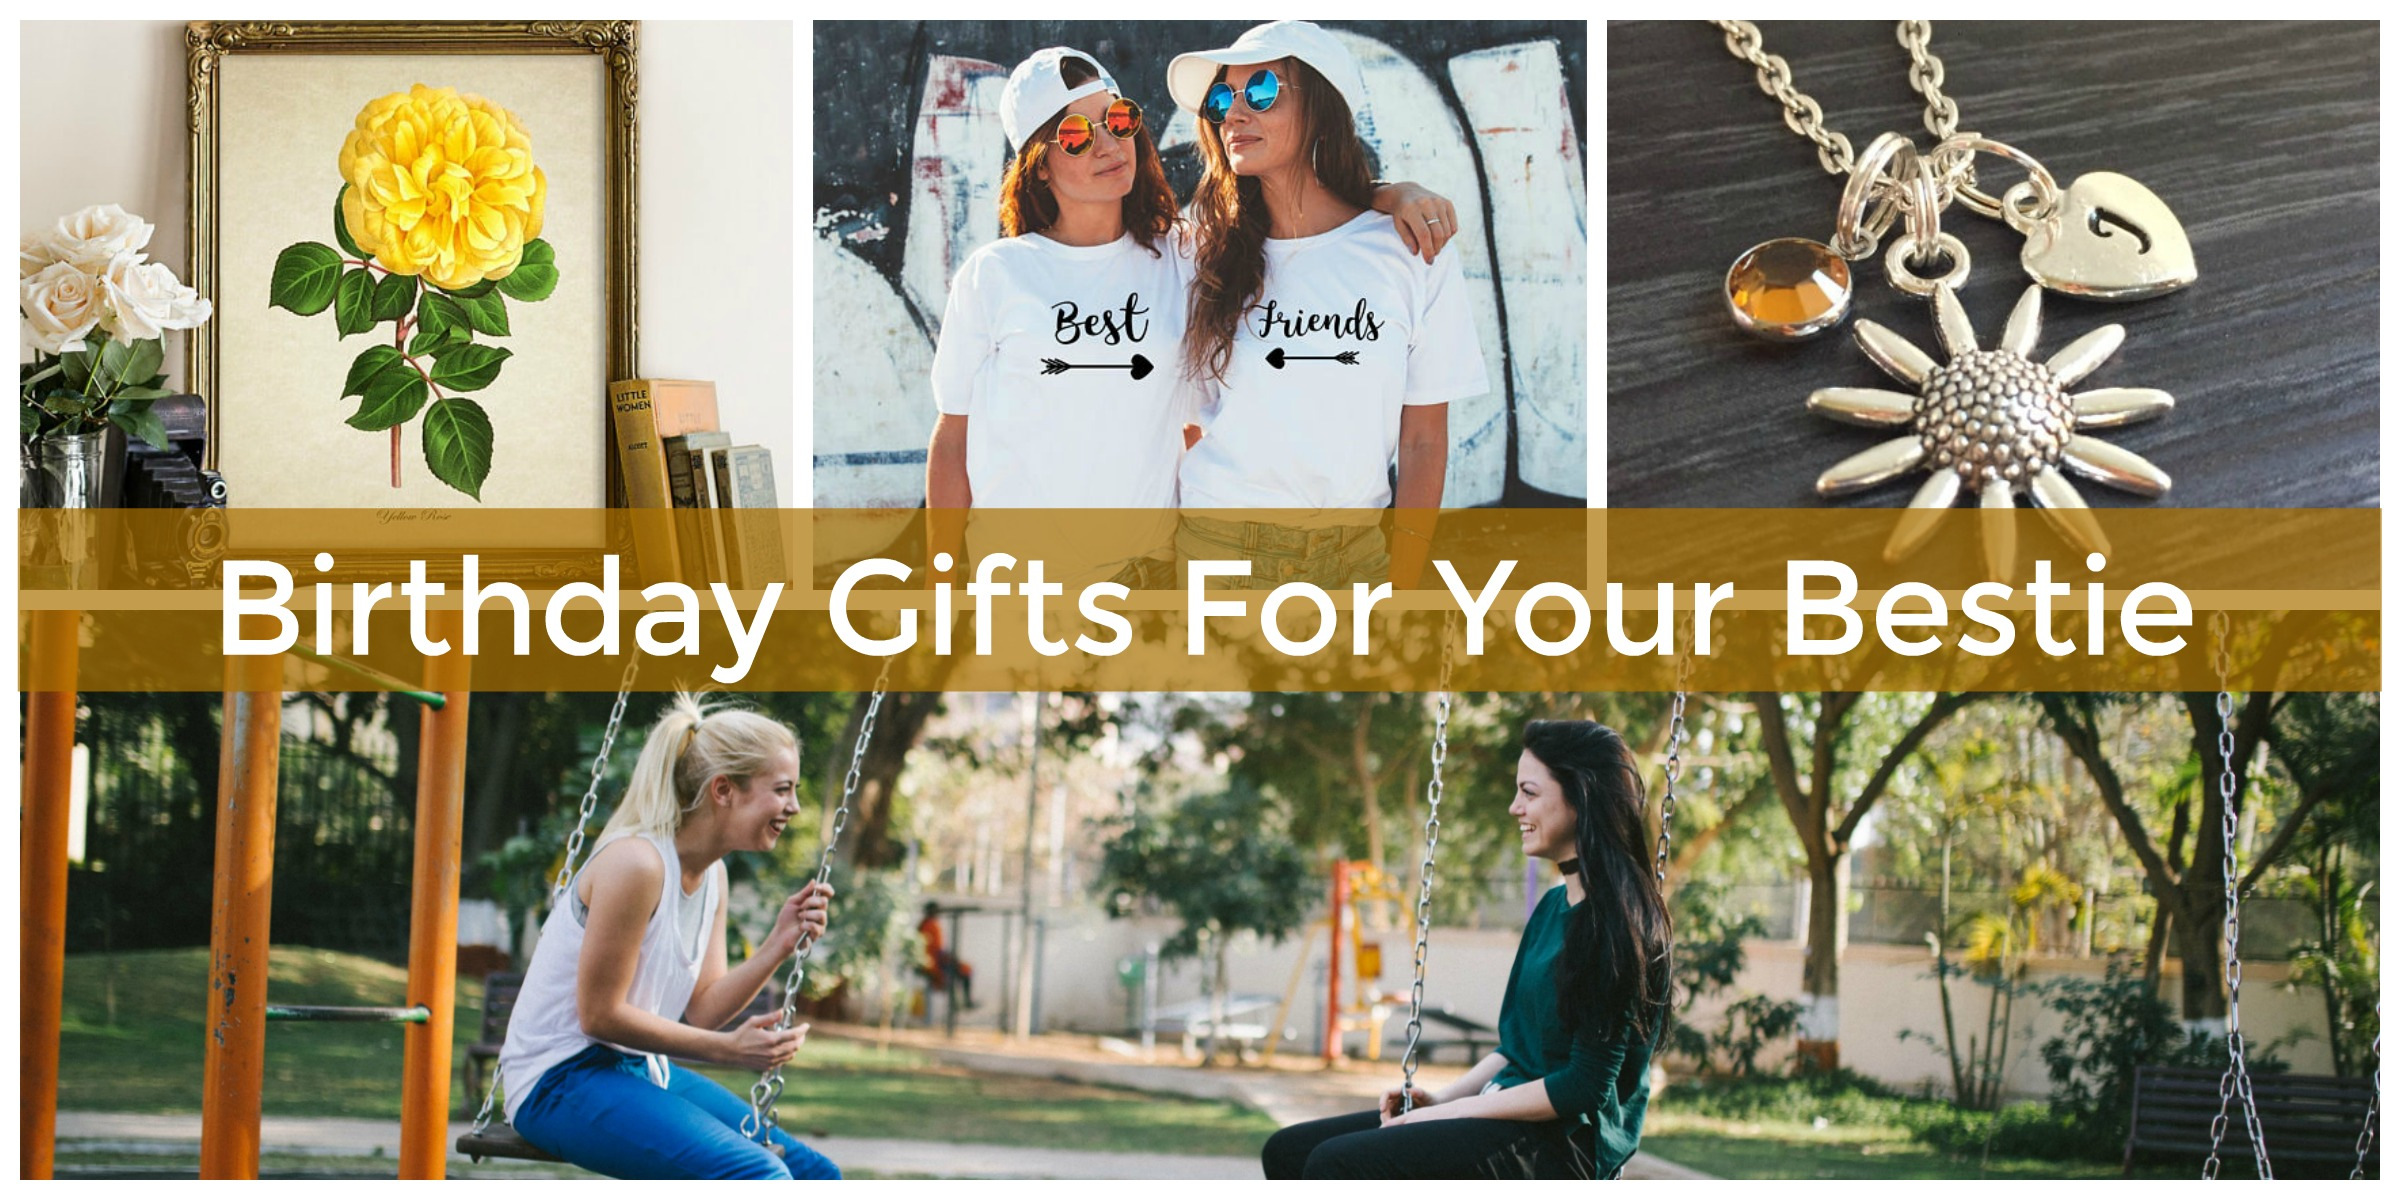 Bday Gift Ideas For Your Best Friend Celebrate BFFs Big Day